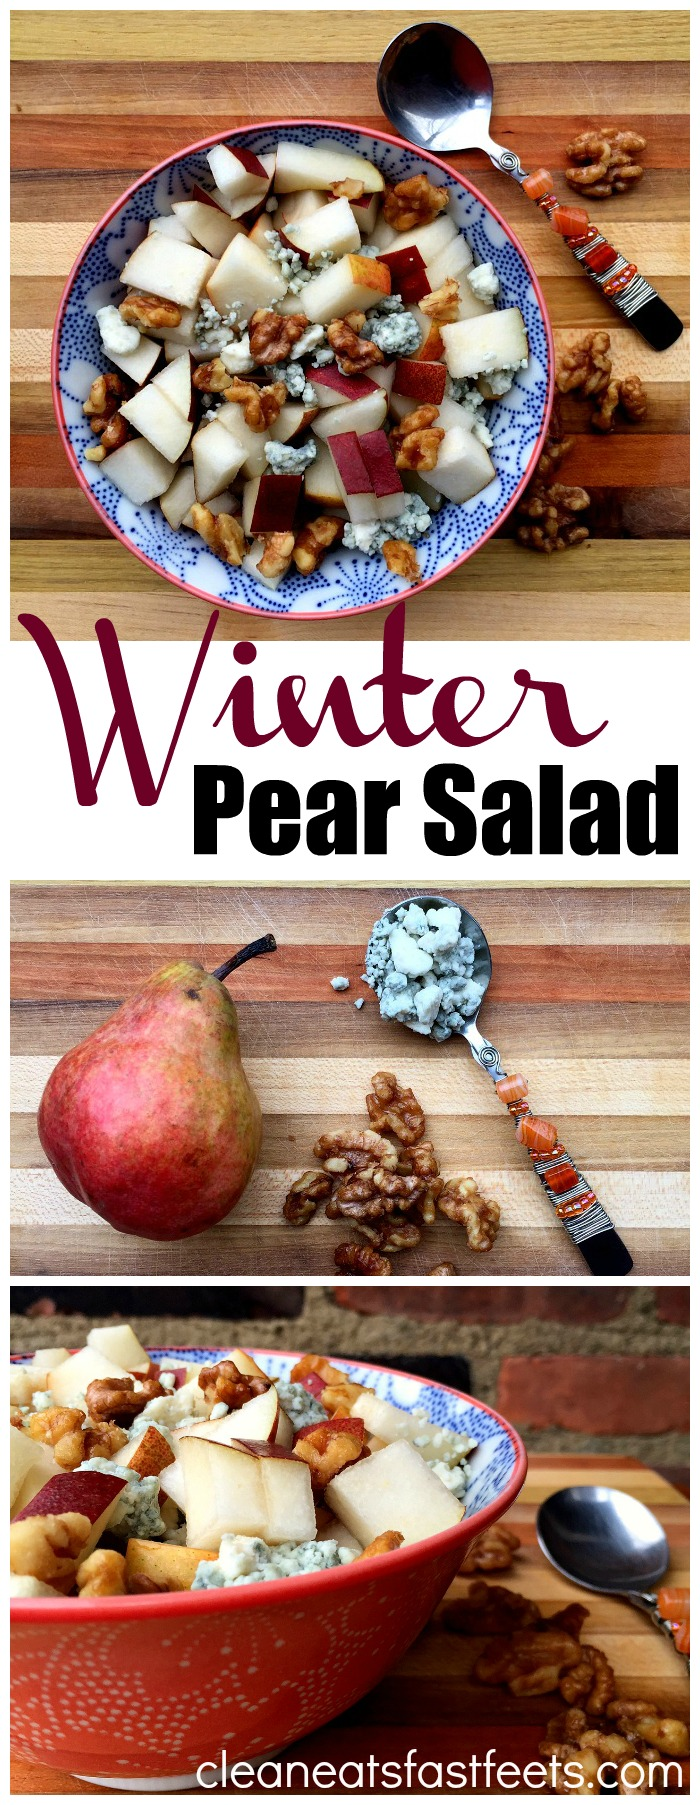 With only three ingredients, this easy and elegant Winter Pear Salad will elevate your table this holiday season and make you the toast of the town, glitter and all.